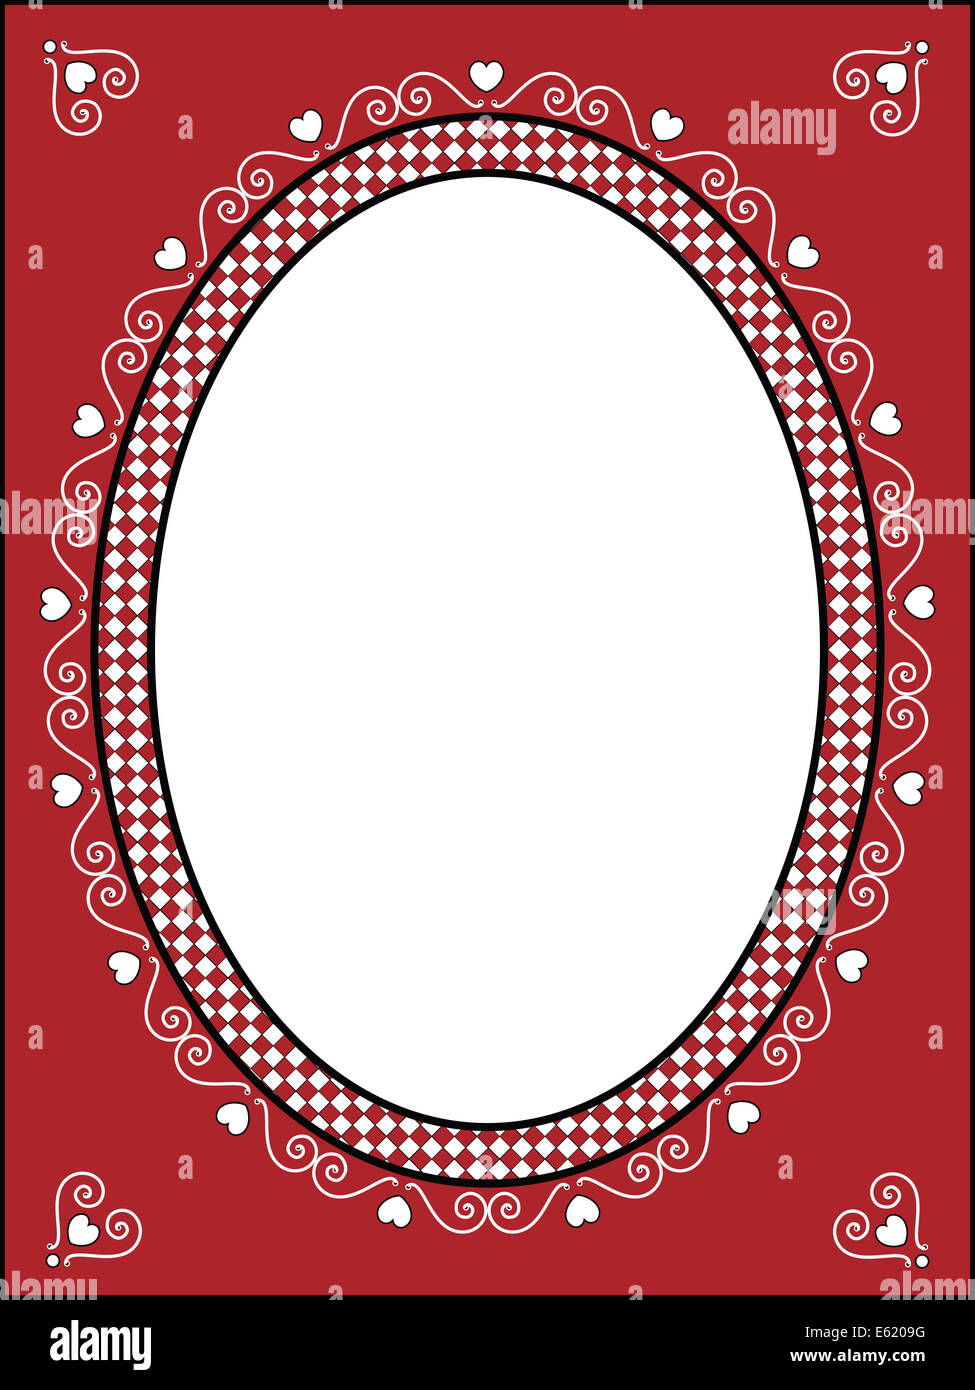 red black and white valentine border frame or tag with gingham